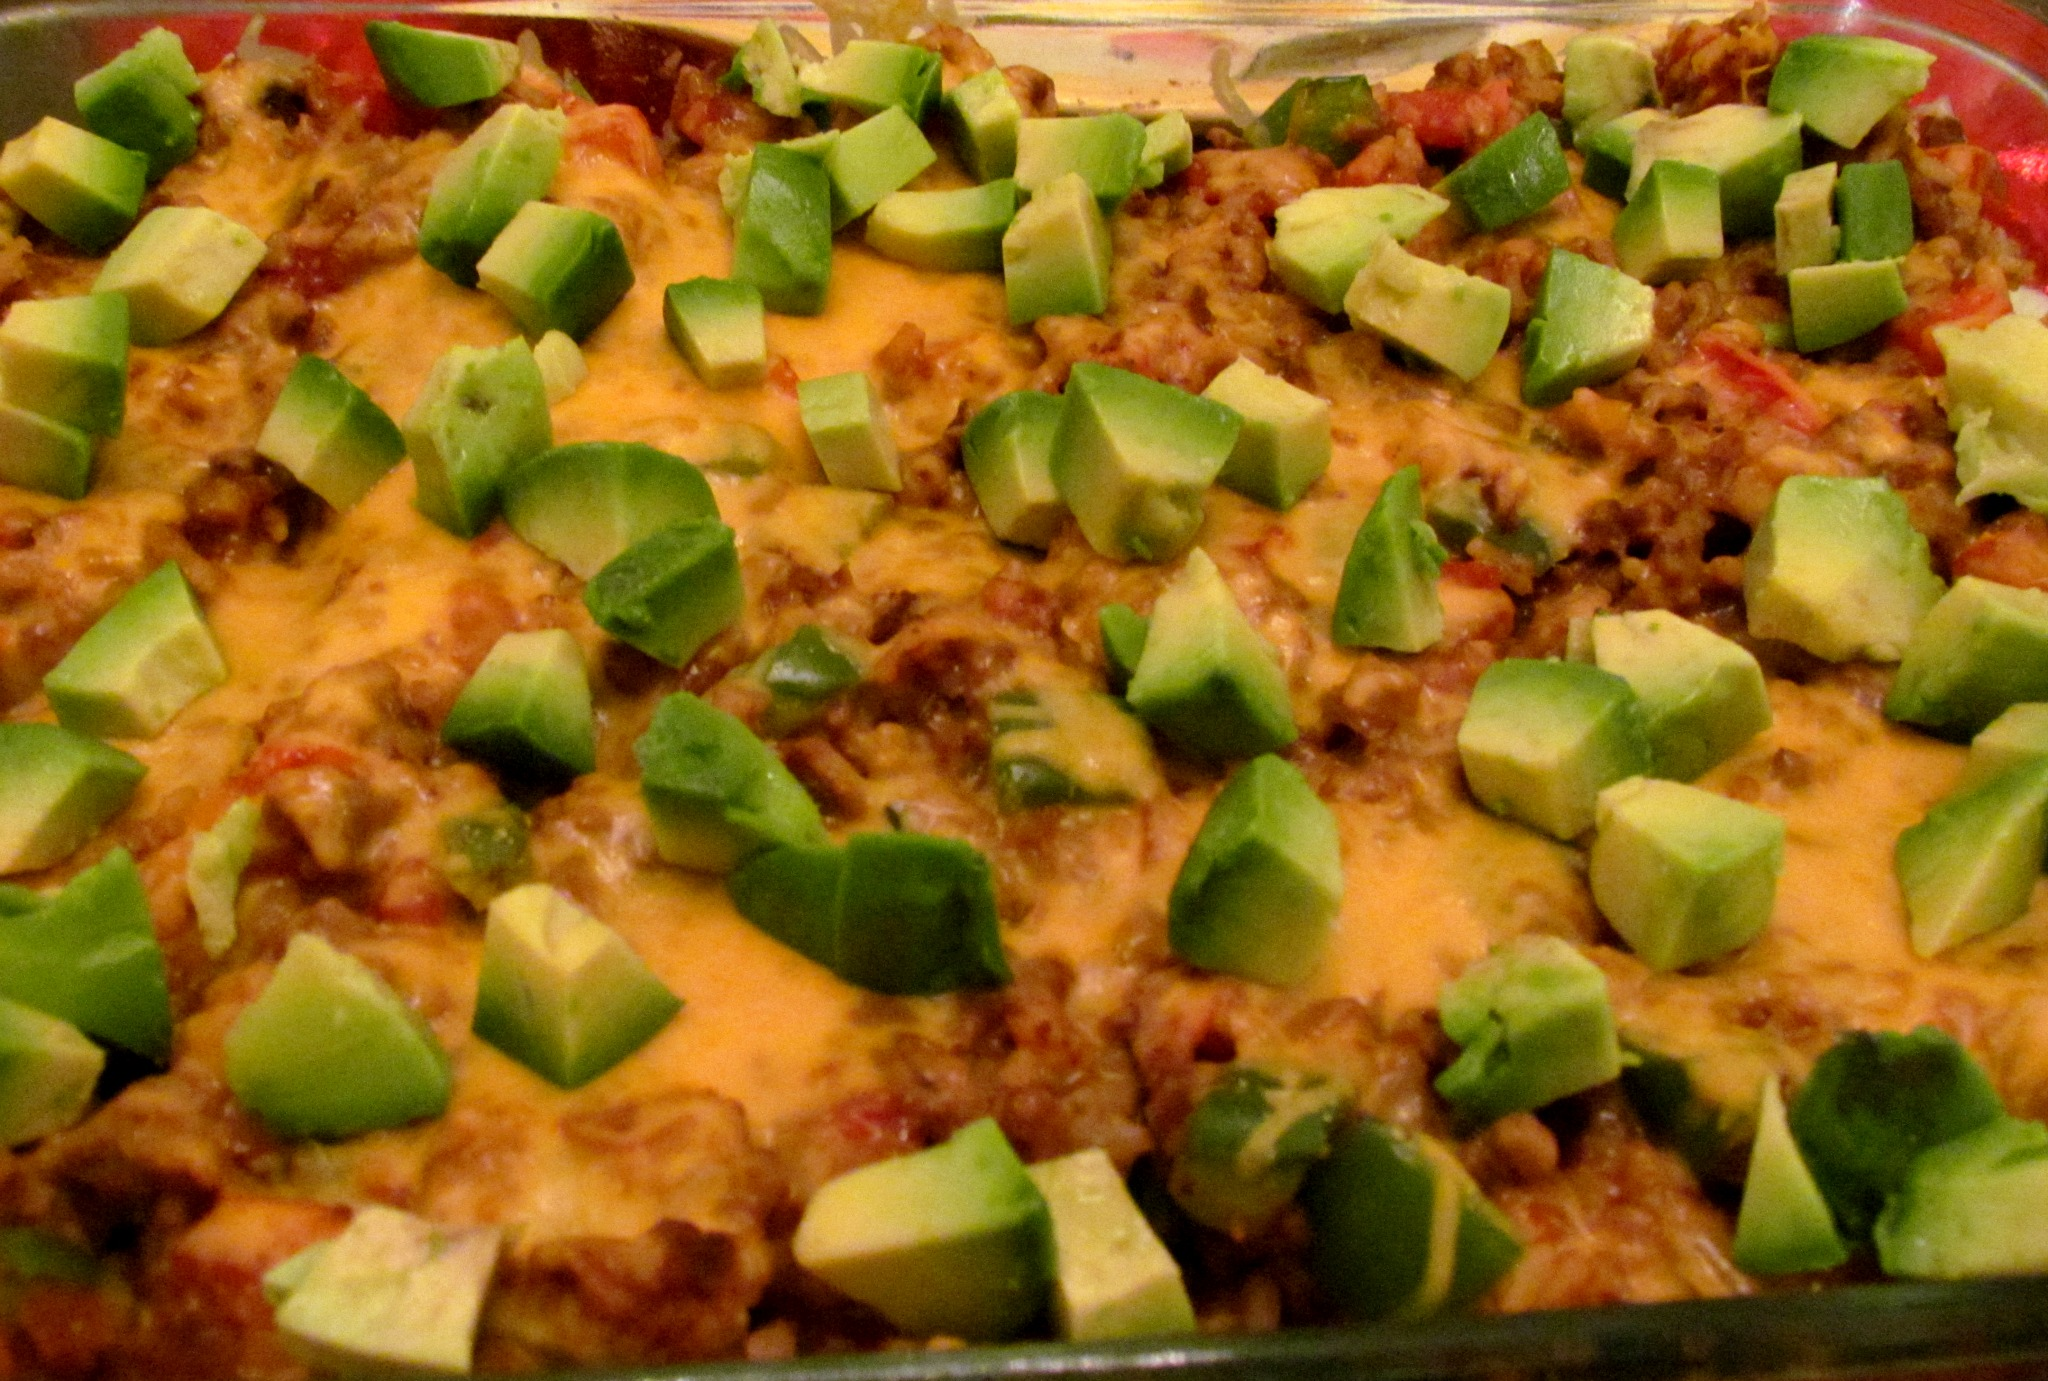 Sunday Night Dinner: Mexican Casserole